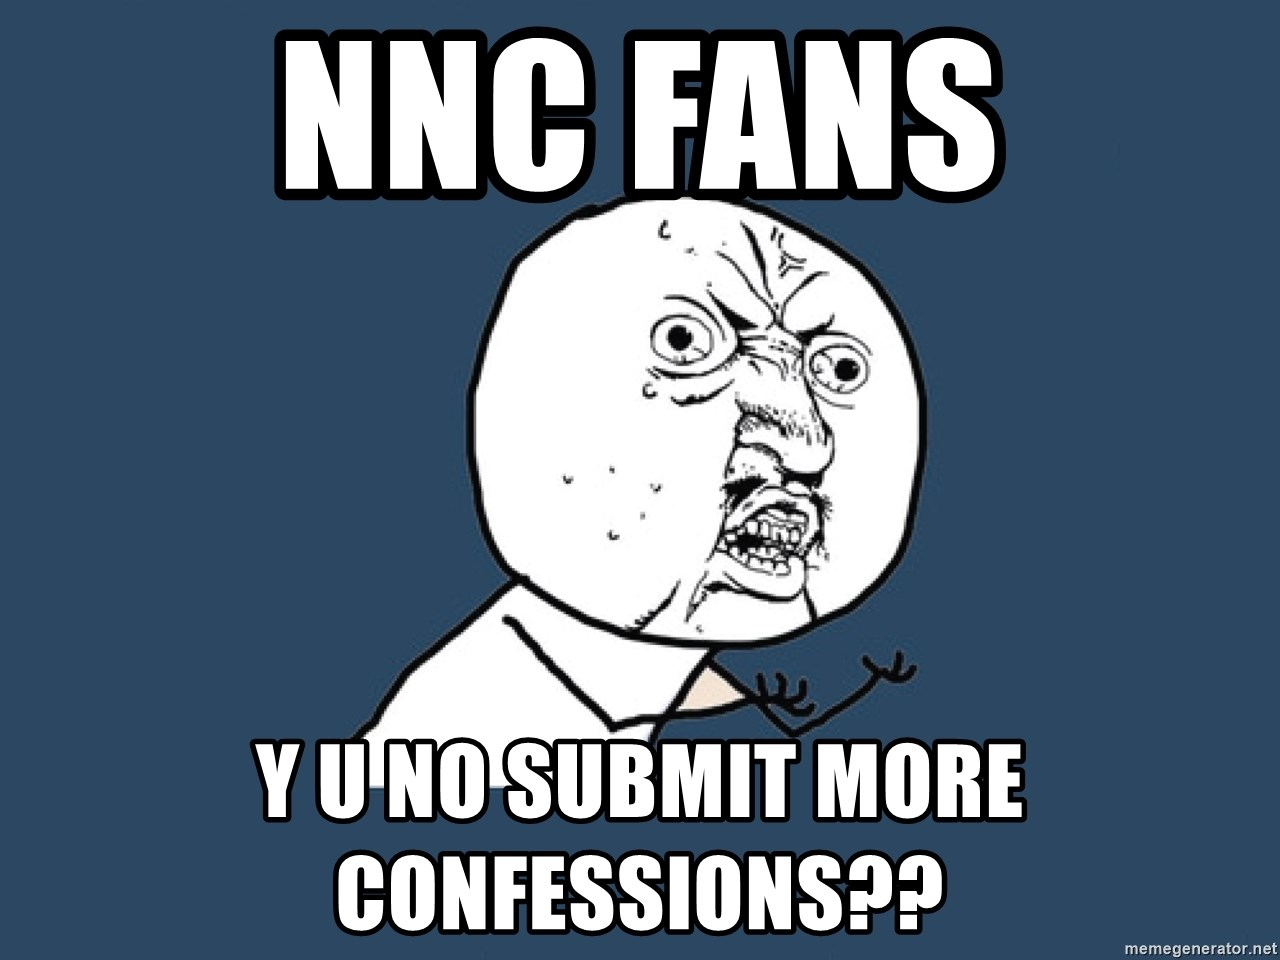 Y U No - nnc Fans y u no submit more confessions??